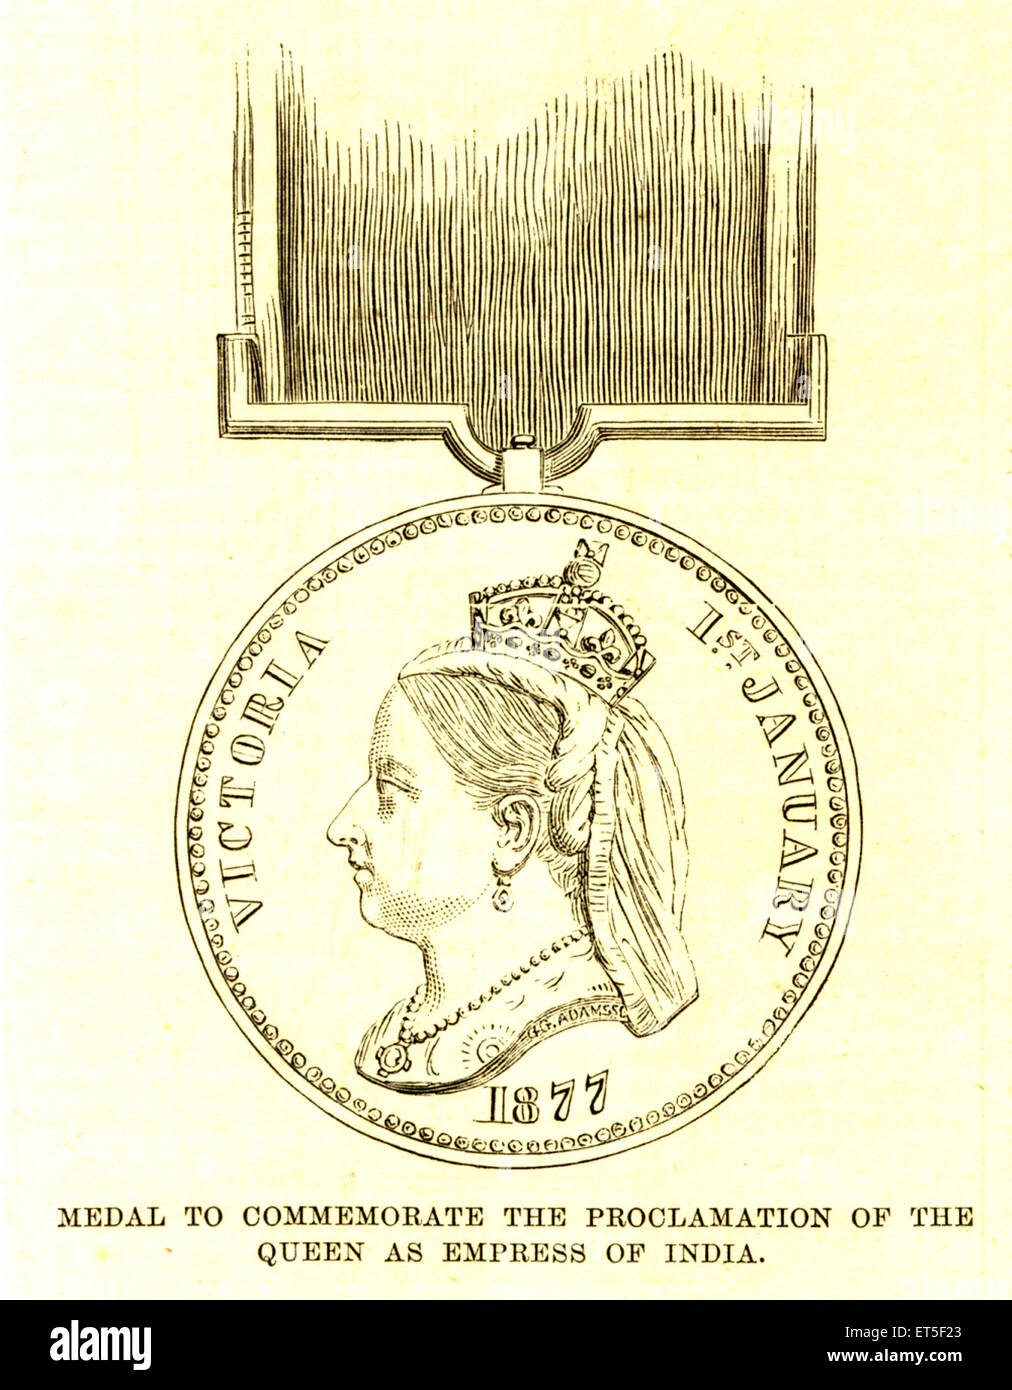 Military and munity mutiny views medal to commemorate proclamation of the queen as empress of India - Stock Image